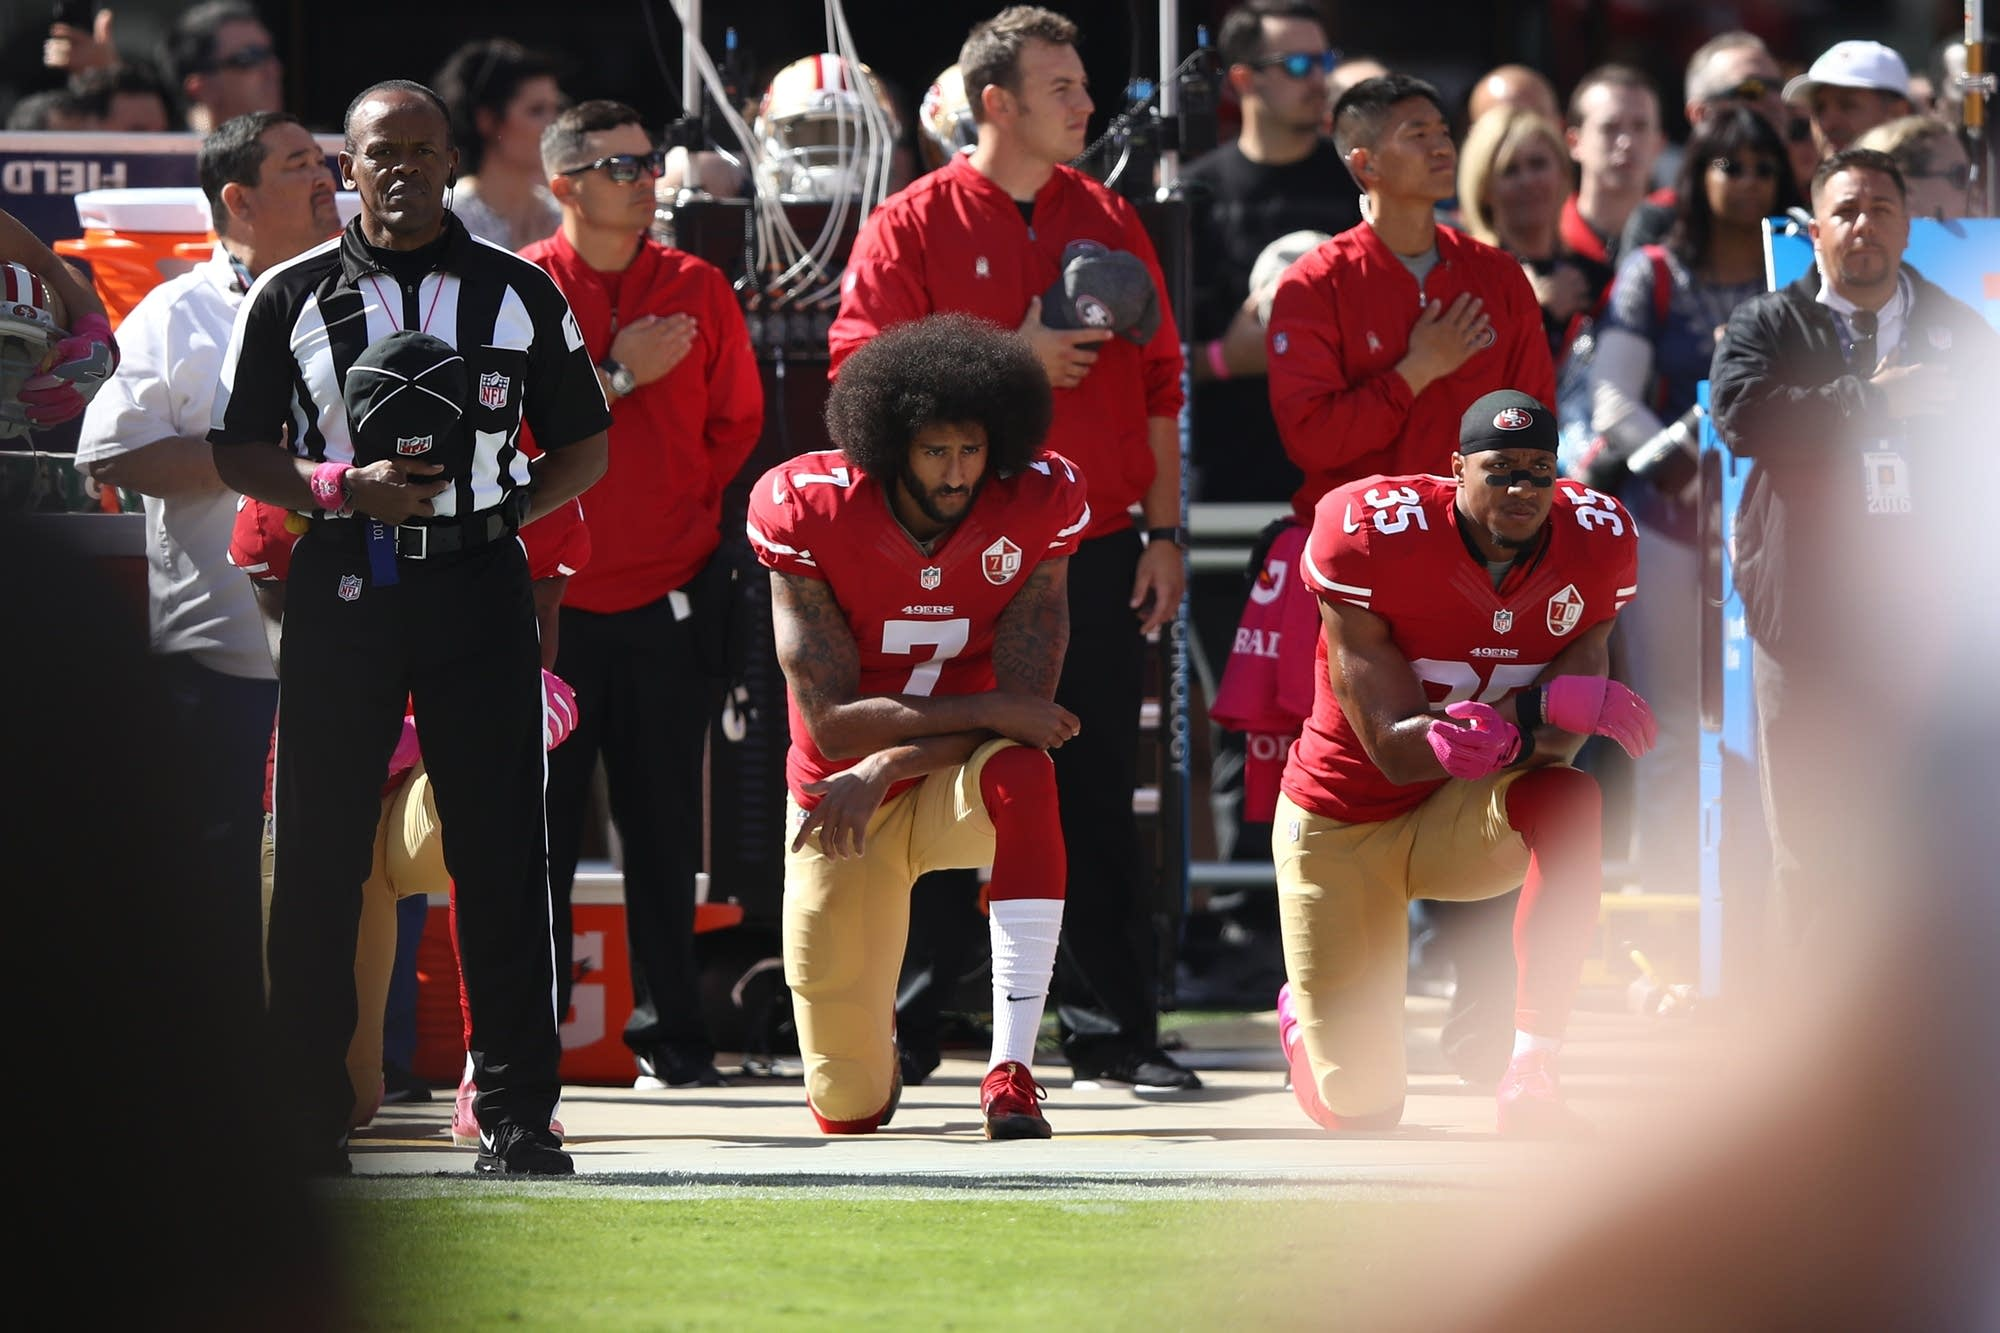 Colin Kaepernick Completes His $1 Million Pledge For Underserved Communities